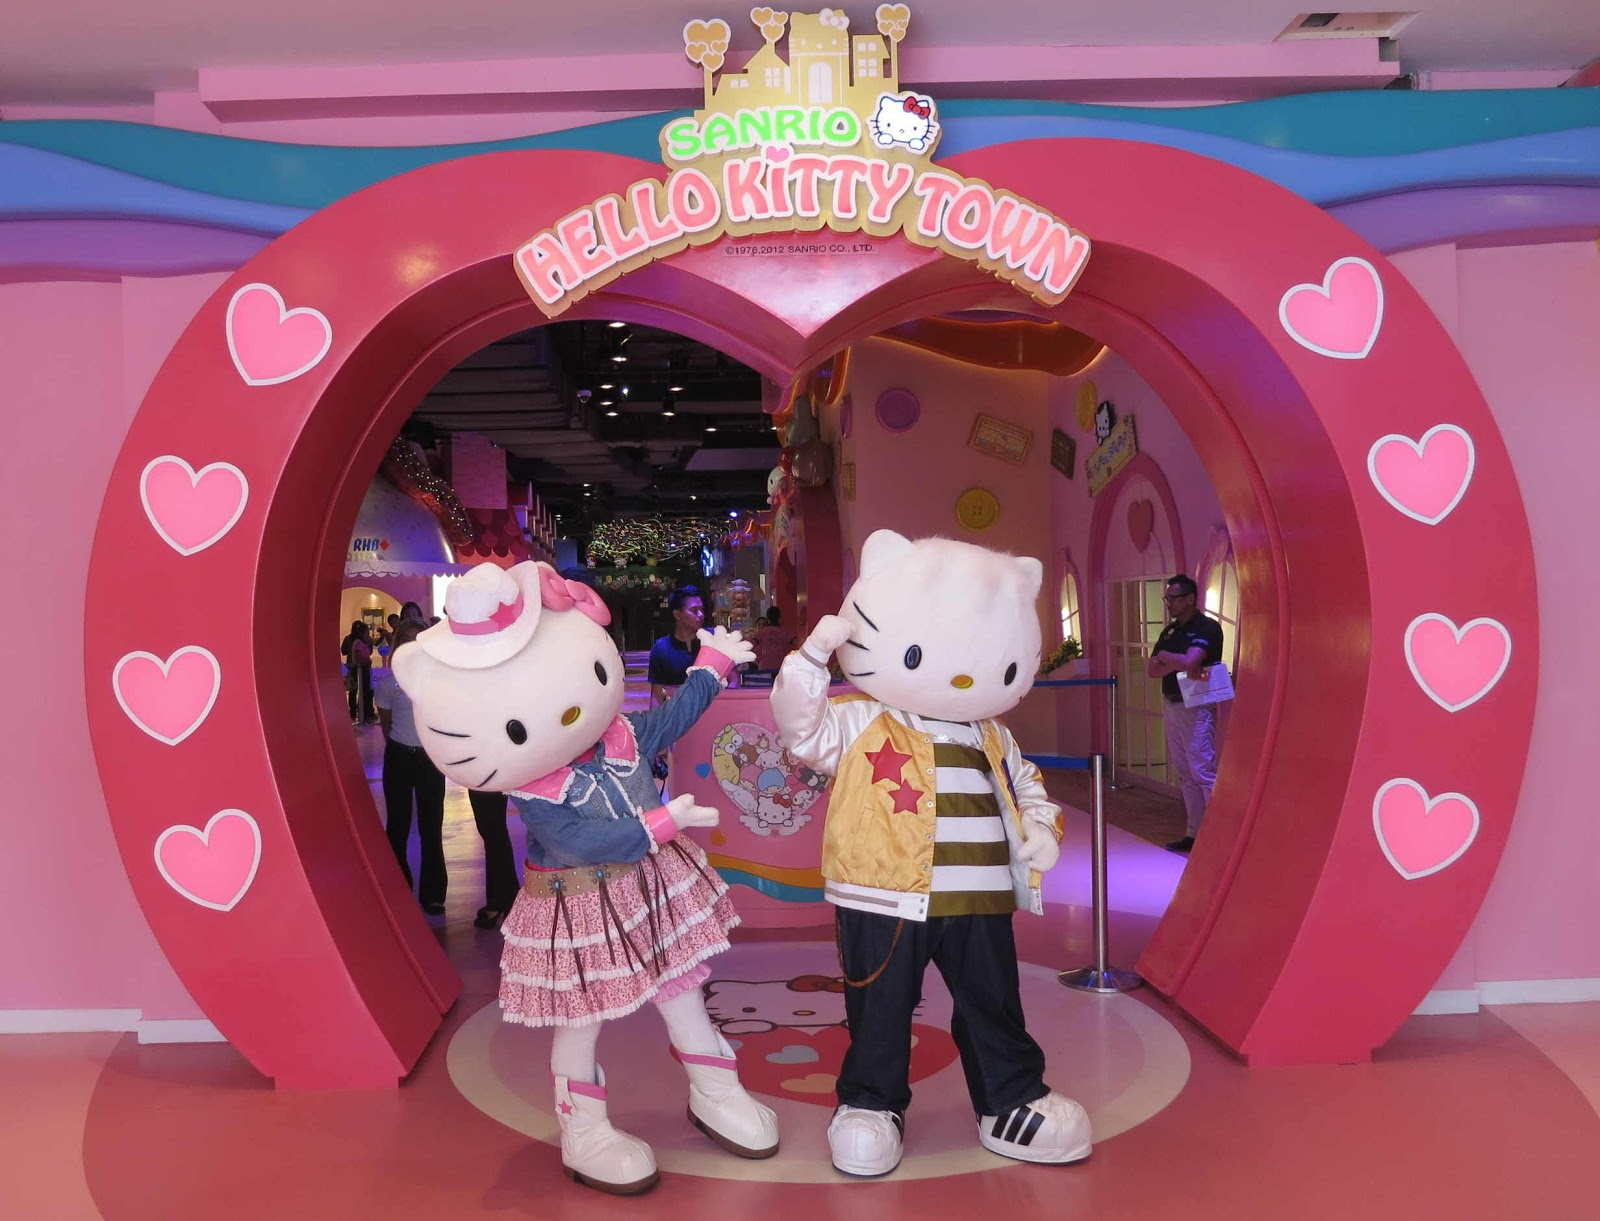 warm welcome from hello kitty and dear daniel to hellow kitty town